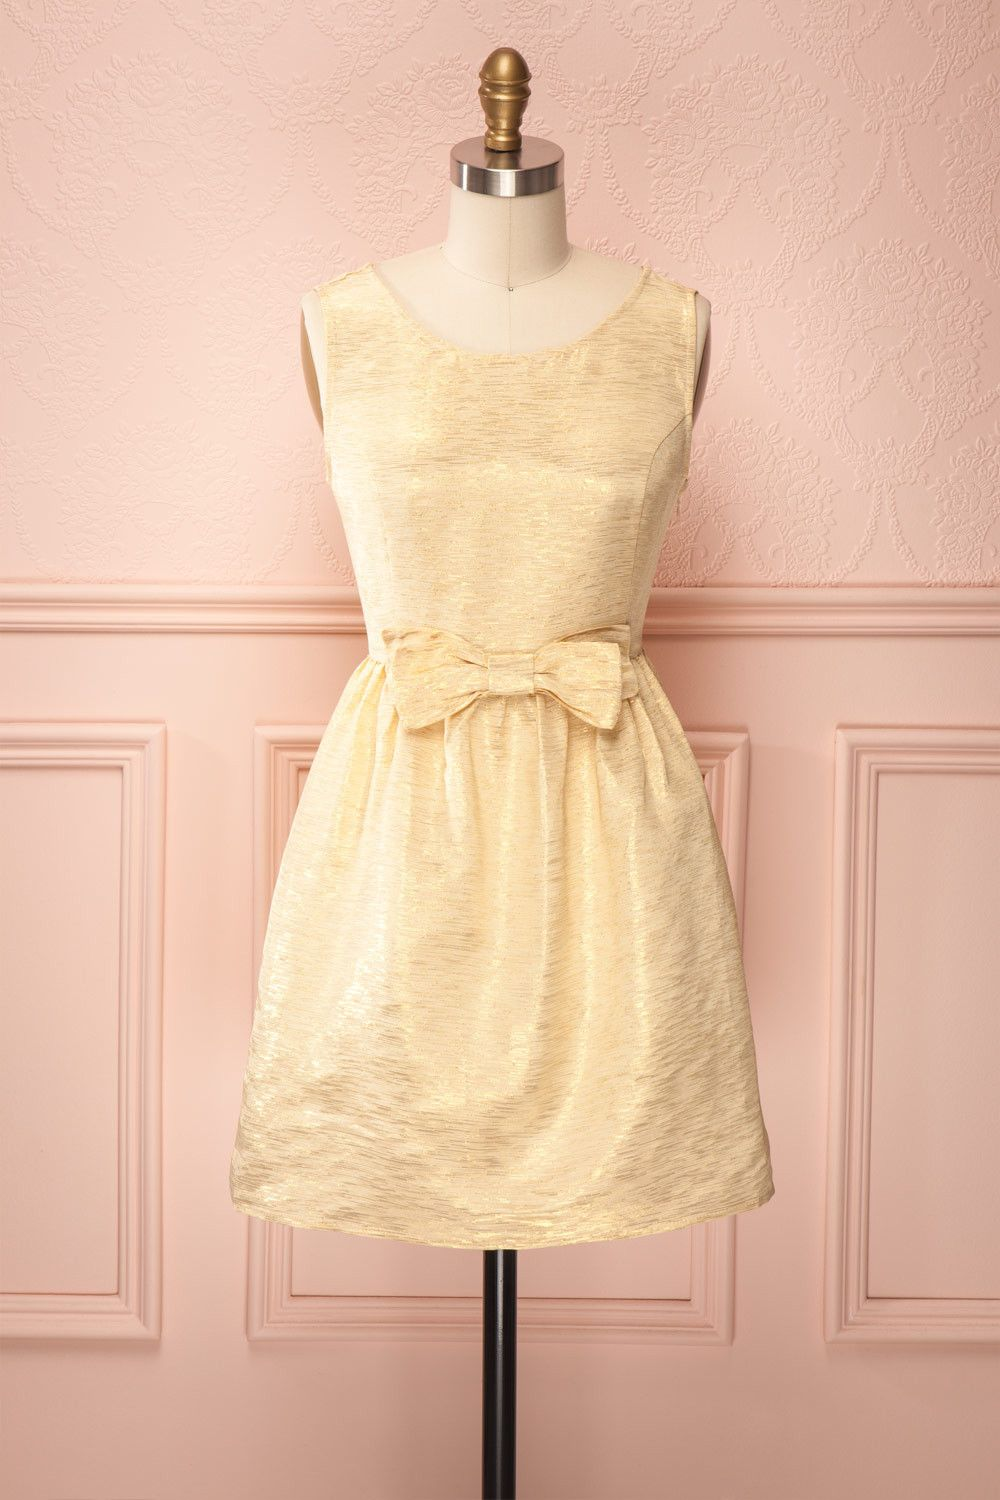 Ethel - Bright gold textured dress with front bow